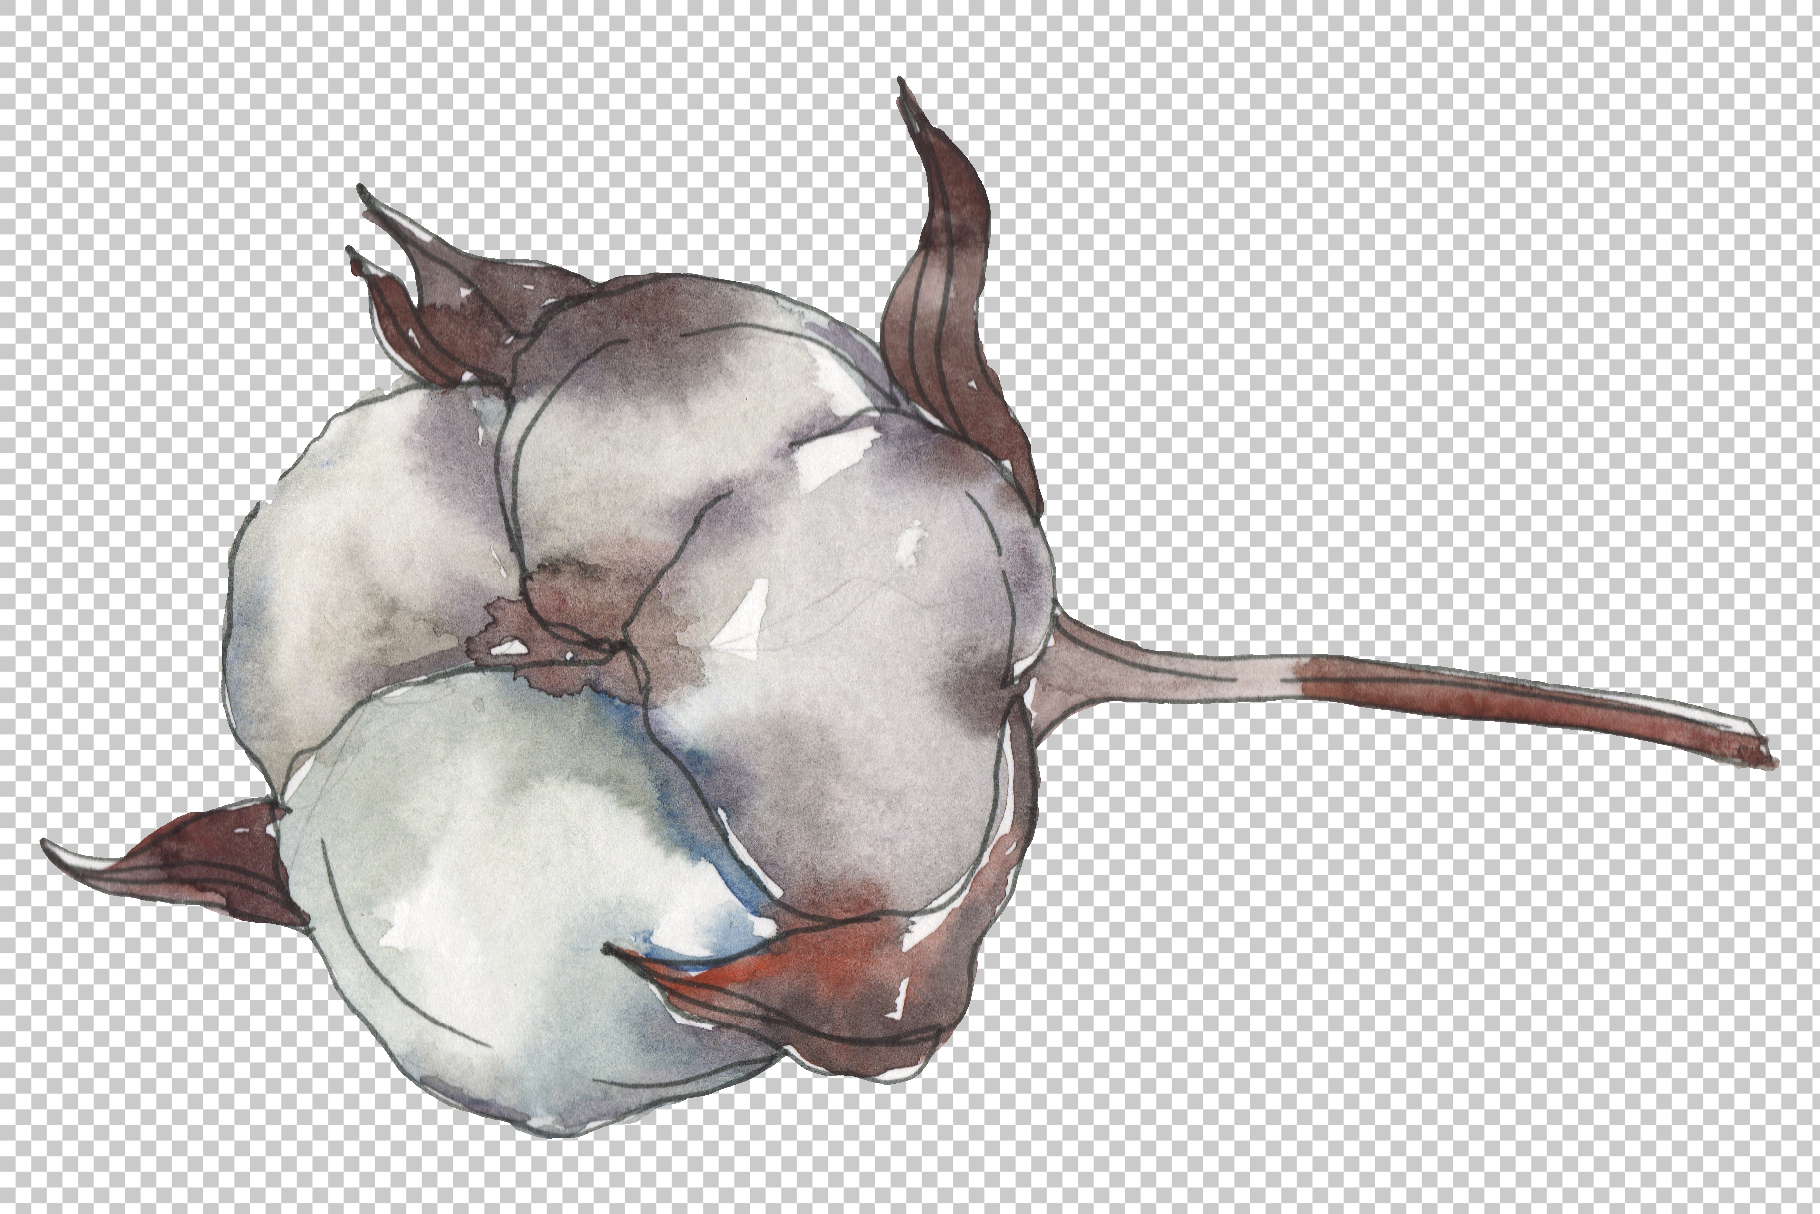 Cotton 2 Watercolor png example image 7